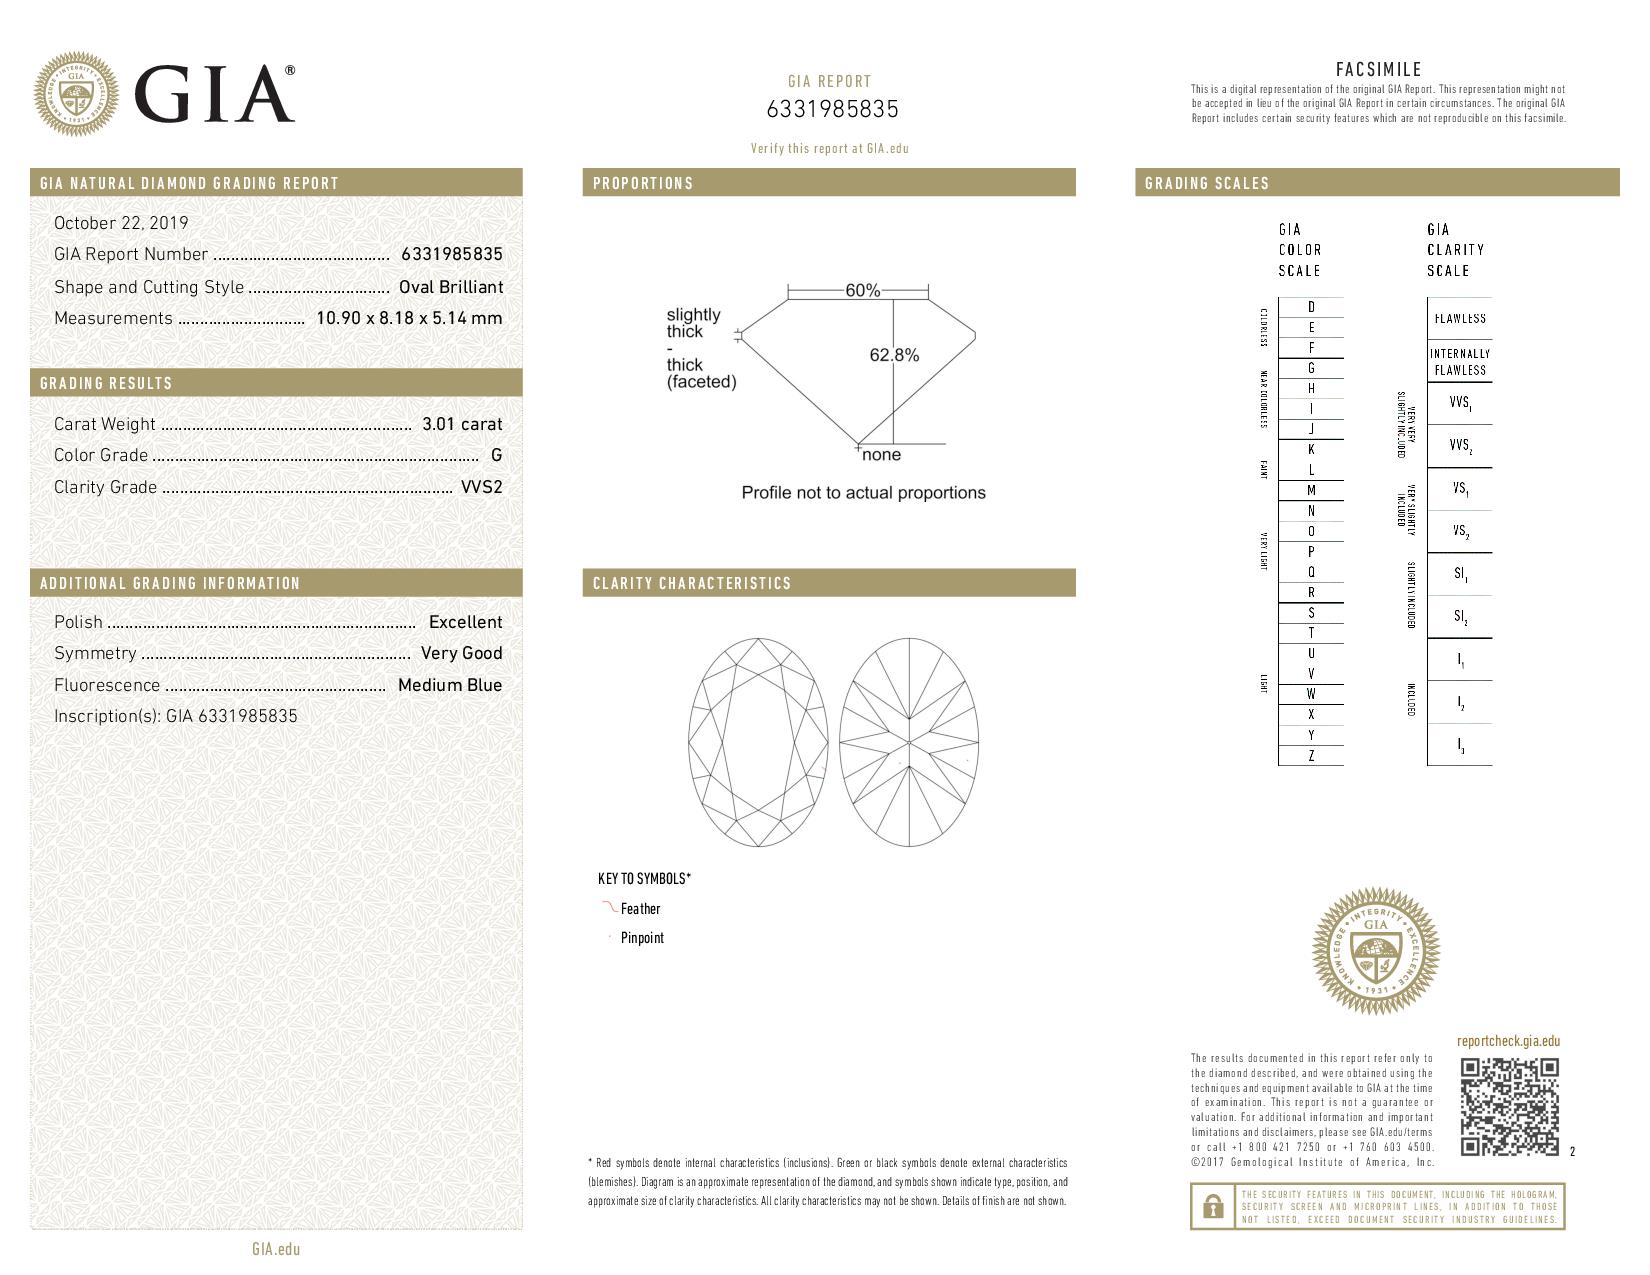 This is a 3.01 carat oval shape, G color, VVS2 clarity natural diamond accompanied by a GIA grading report.